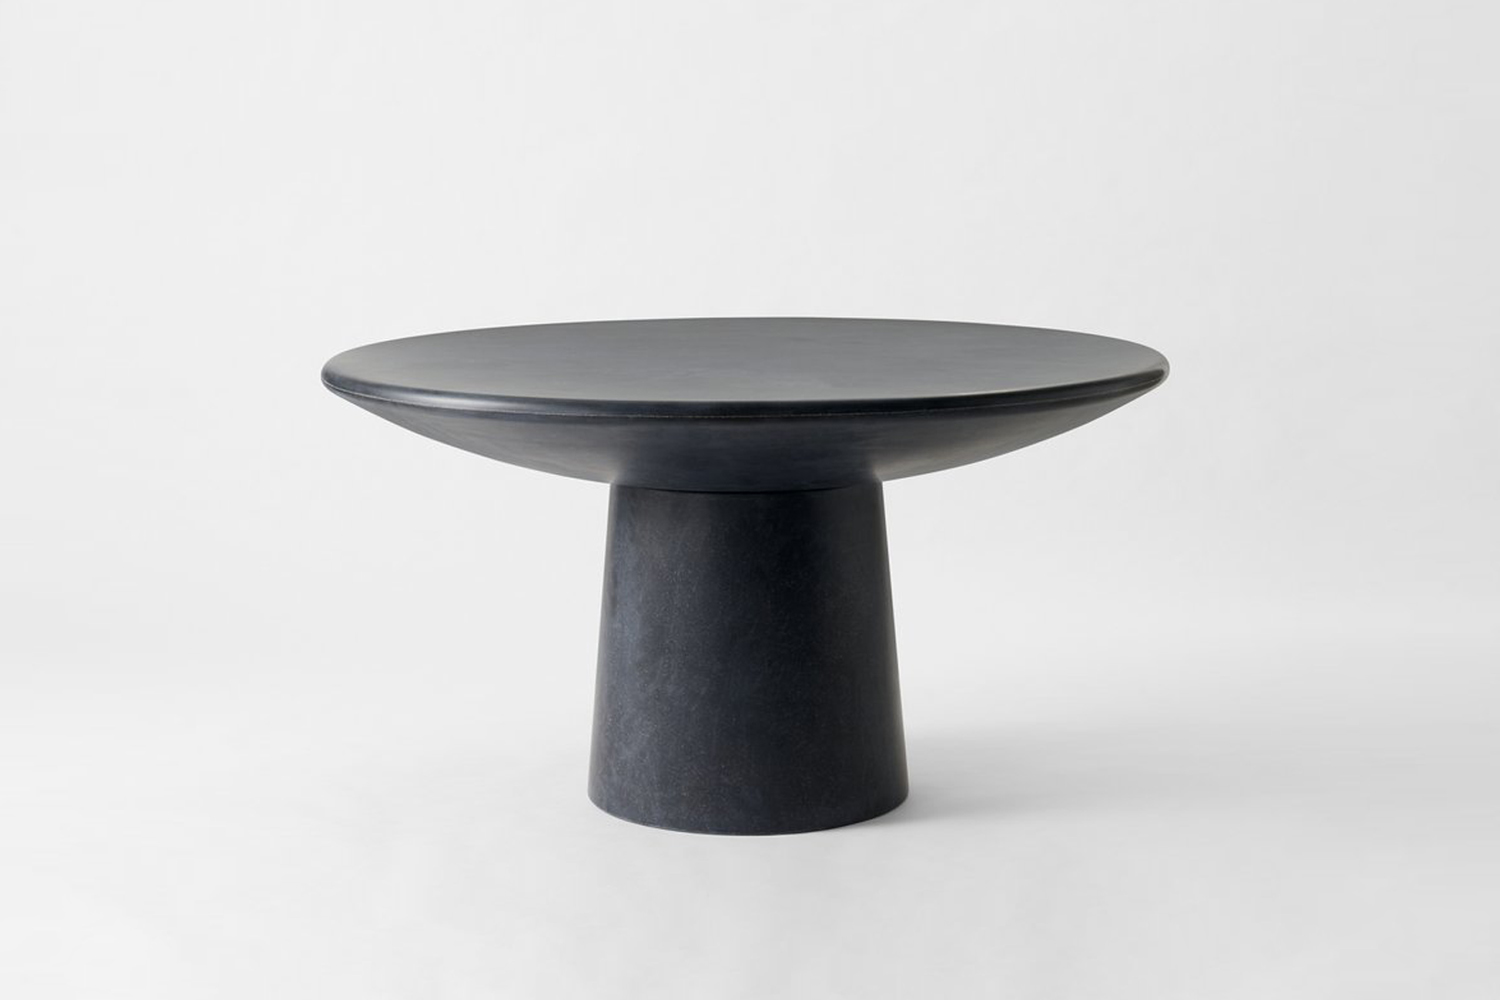 The Faye Toogood Charcoal Roly Poly Dining Table is $,000 at March.